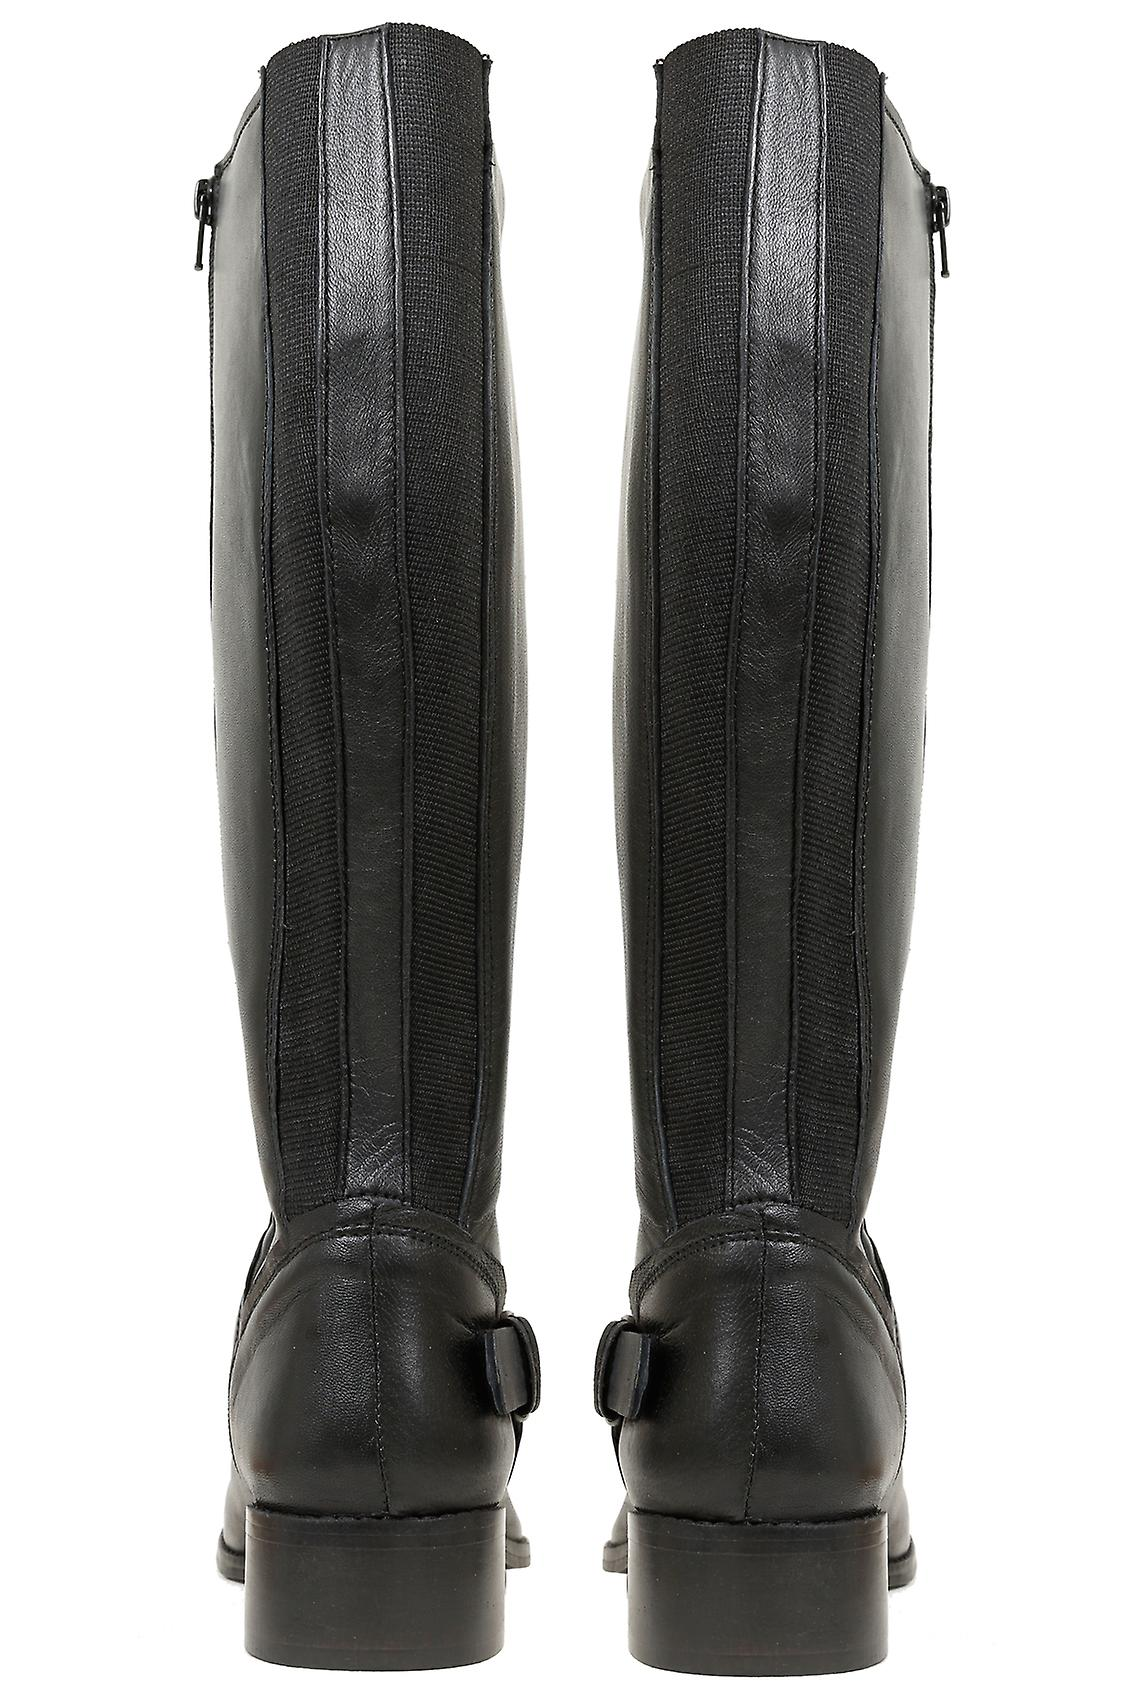 Black Knee High Leather Riding Boot With Buckle Trim & XL Calf Fitting In EEE Fit